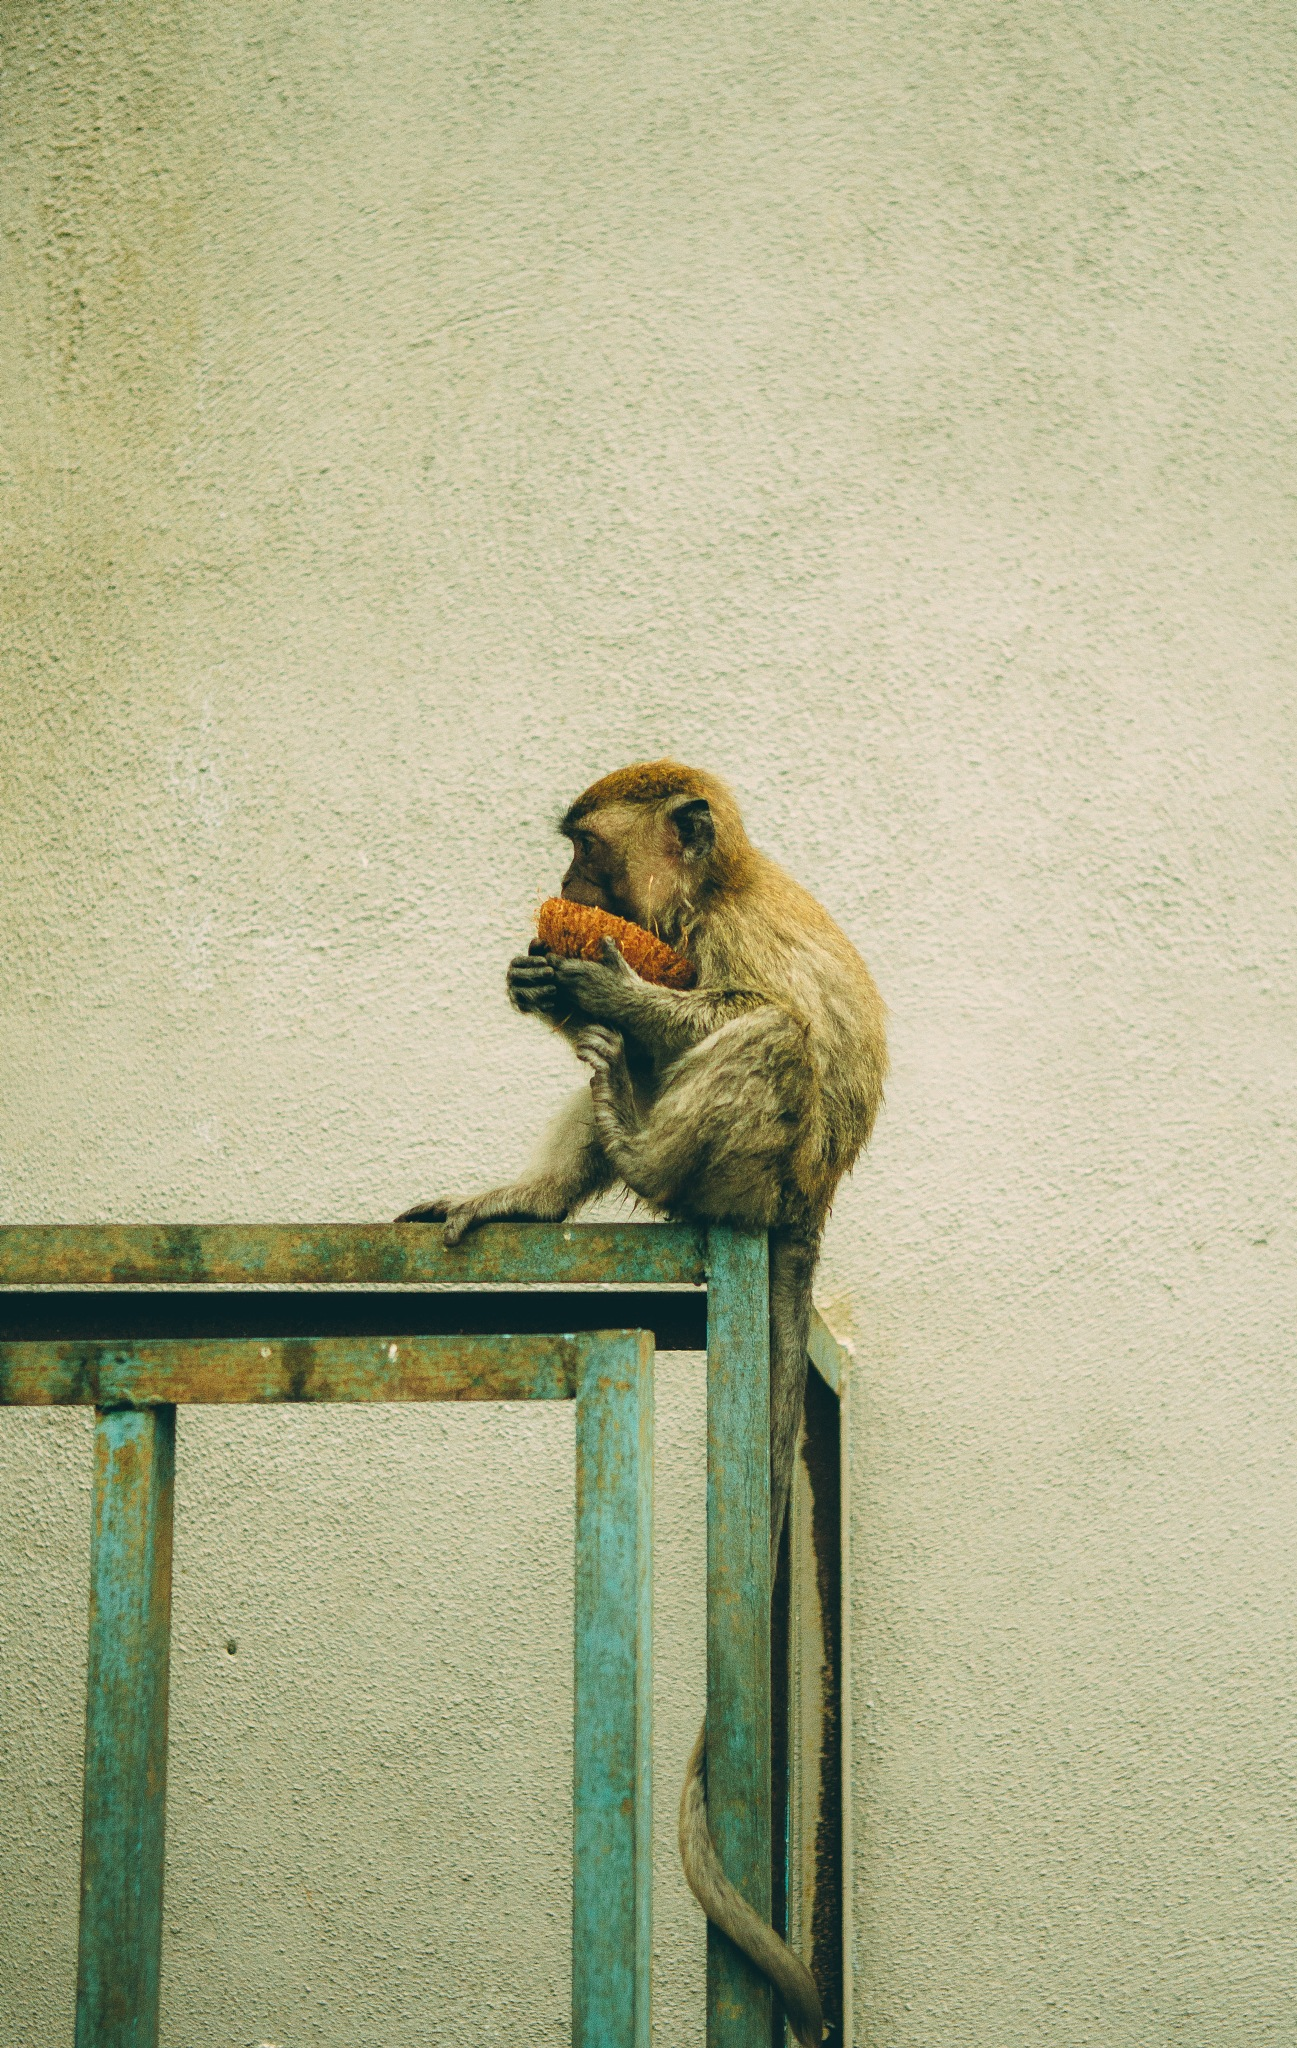 Monkey eating by gsoul